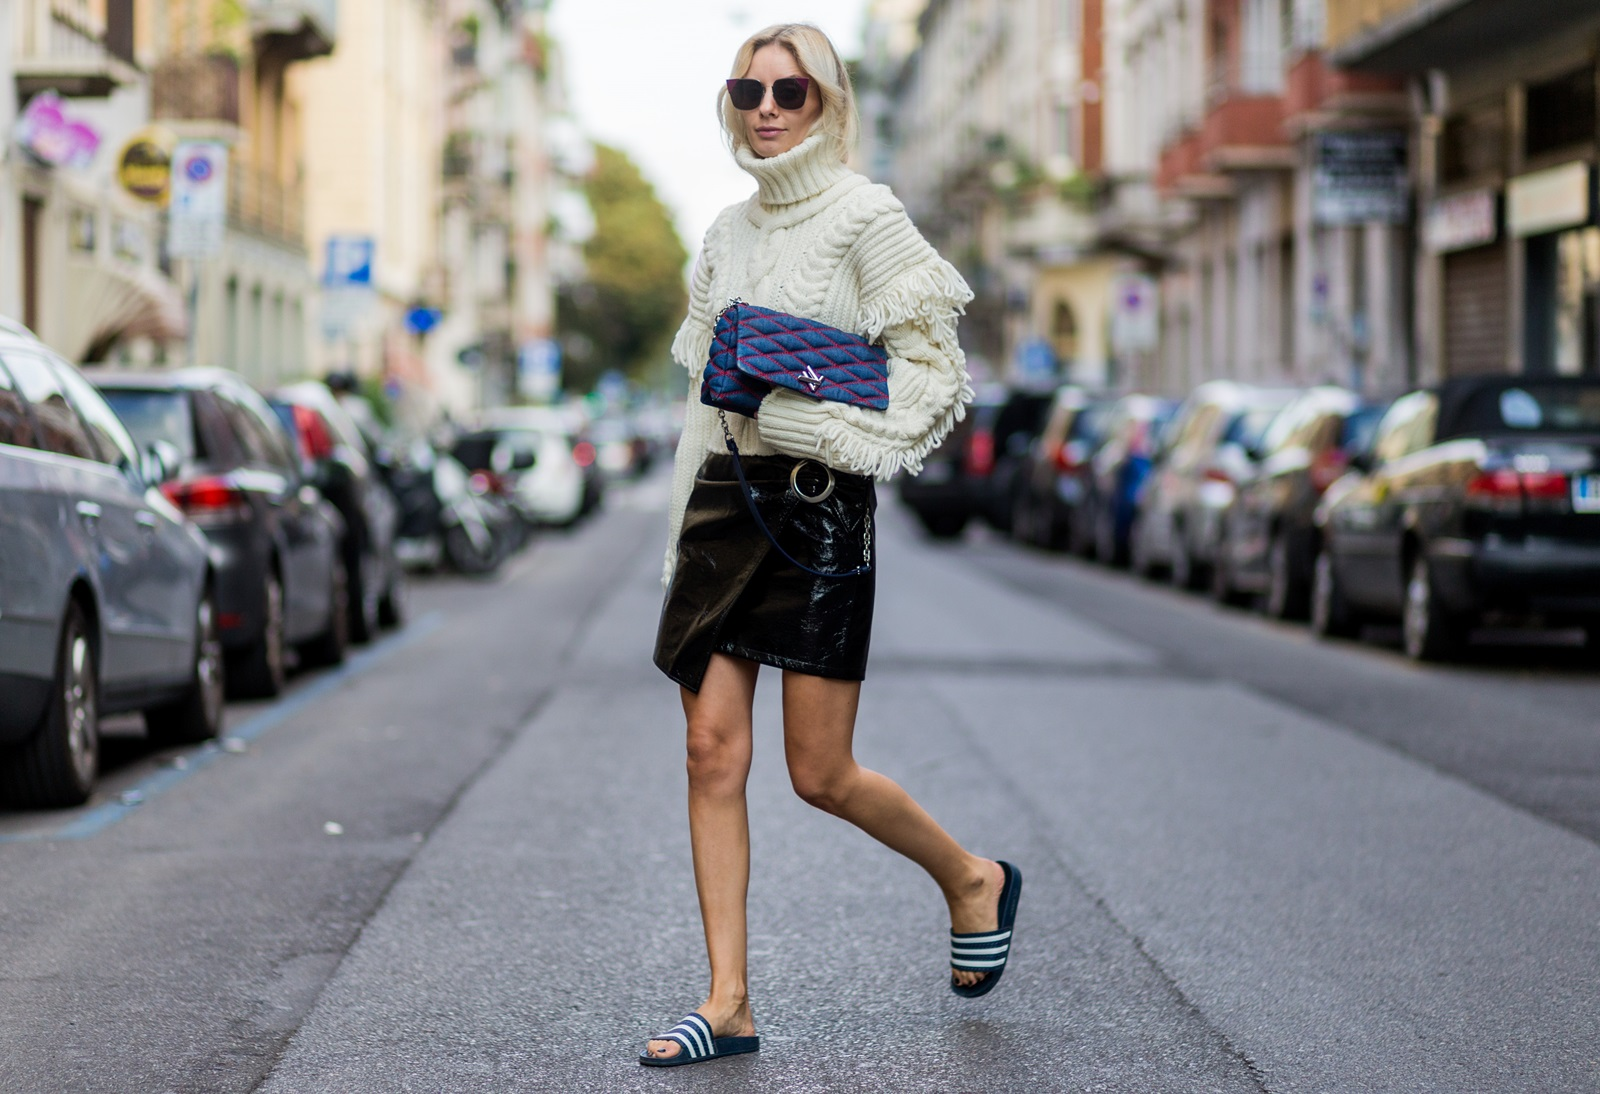 MILAN, ITALY - SEPTEMBER 21: Lisa Hahnbueck wearing a OffWhite Knit Turtle Neck, Oversized Sleeves & Fringes, Mango Asymmetric Patent Leather Skirt with Belt, Adiletten, Louis Vuitton GO-14 PM Denim Bag, Fendi sunglasses is seen outside Alberta Ferretti during Milan Fashion Week Spring/Summer 2017 on September 21, 2016 in Milan, Italy. (Photo by Christian Vierig/Getty Images) *** Local Caption *** Lisa Hahnbueck